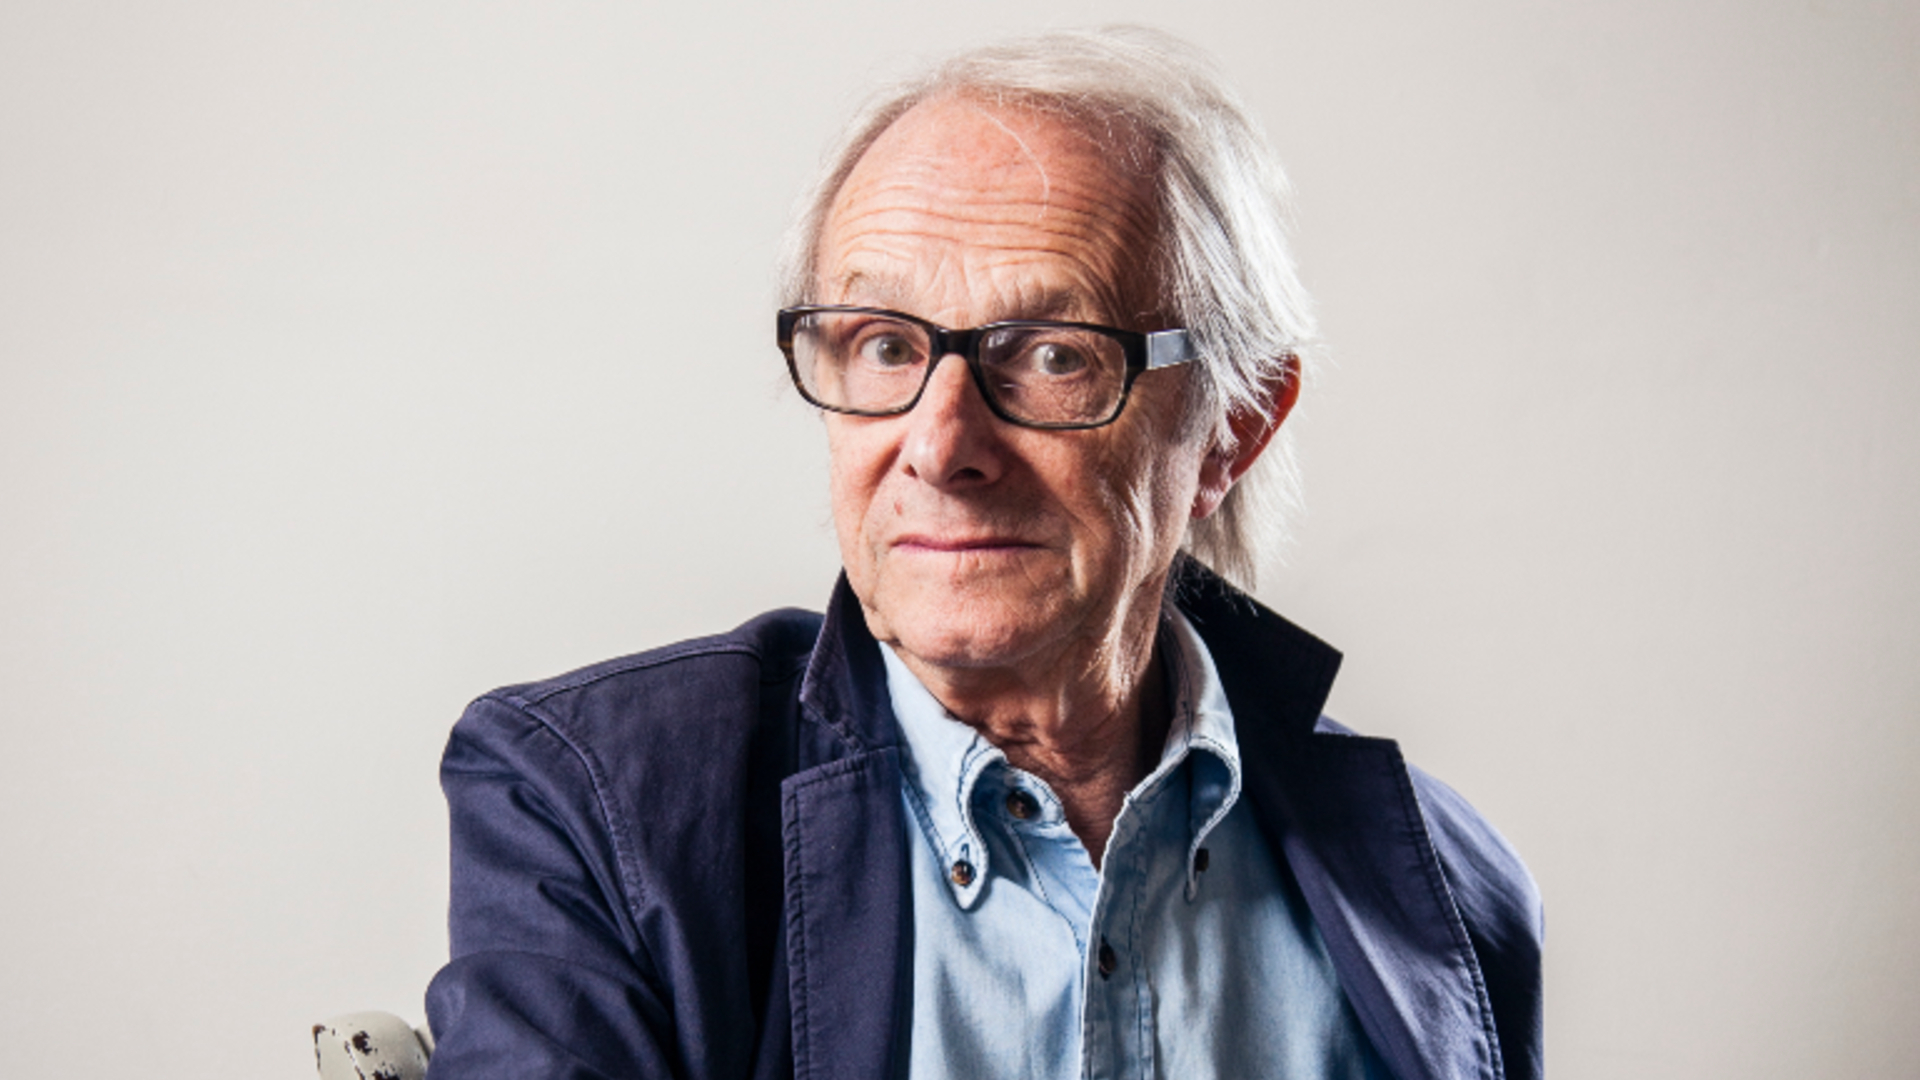 Ken Loach: 'The gig economy strips people of their dignity'